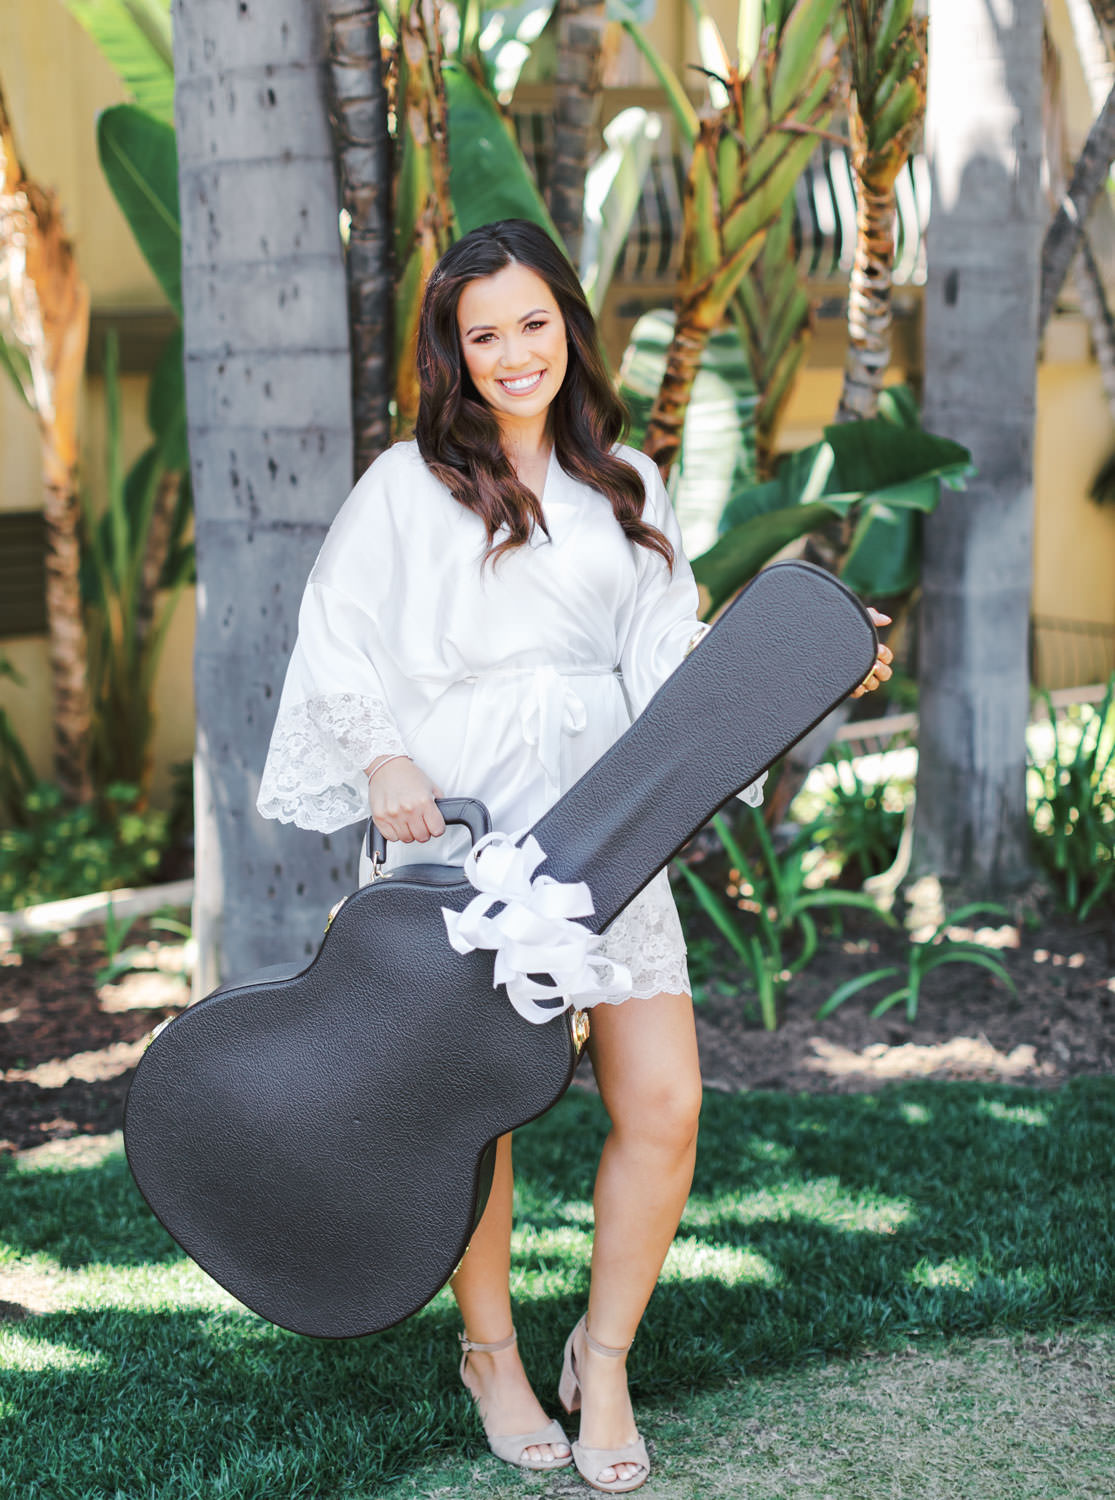 Bride gifted the groom a guitar for the wedding day. Wedding at Humphreys Half Moon Inn by Cavin Elizabeth Photography